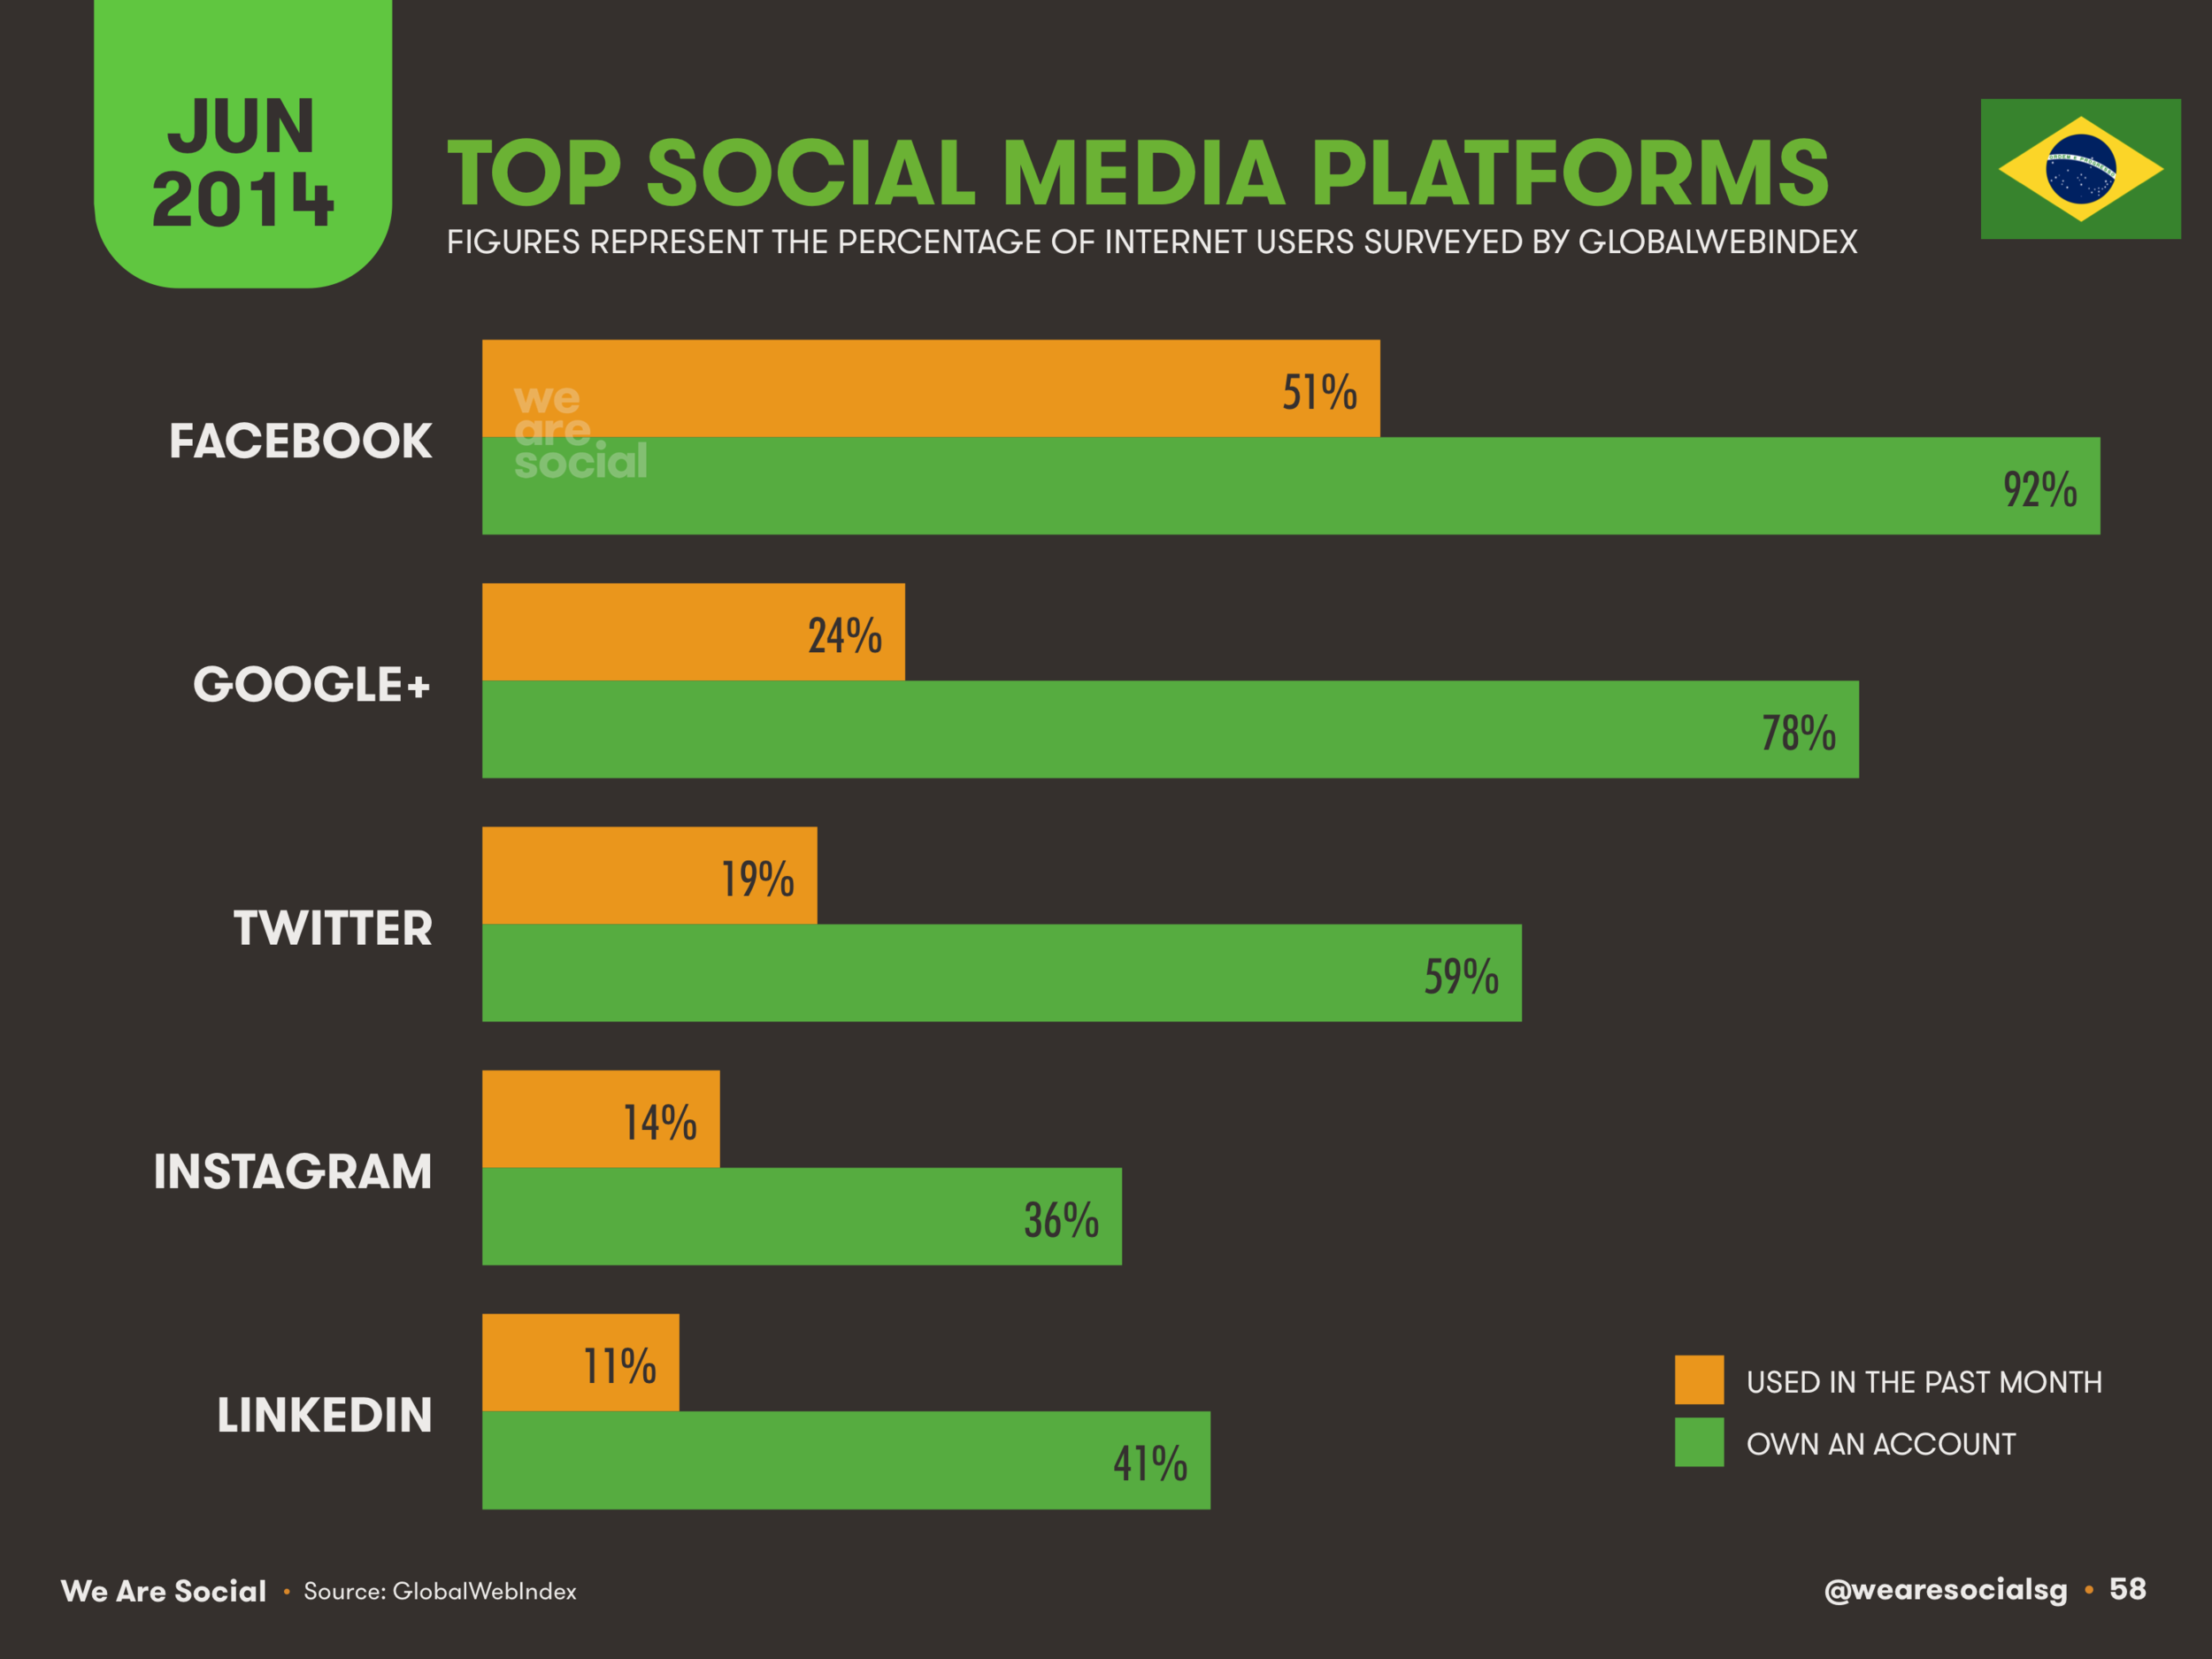 58 Top Social Platforms in Brazil 2014 - We Are Social 1.png